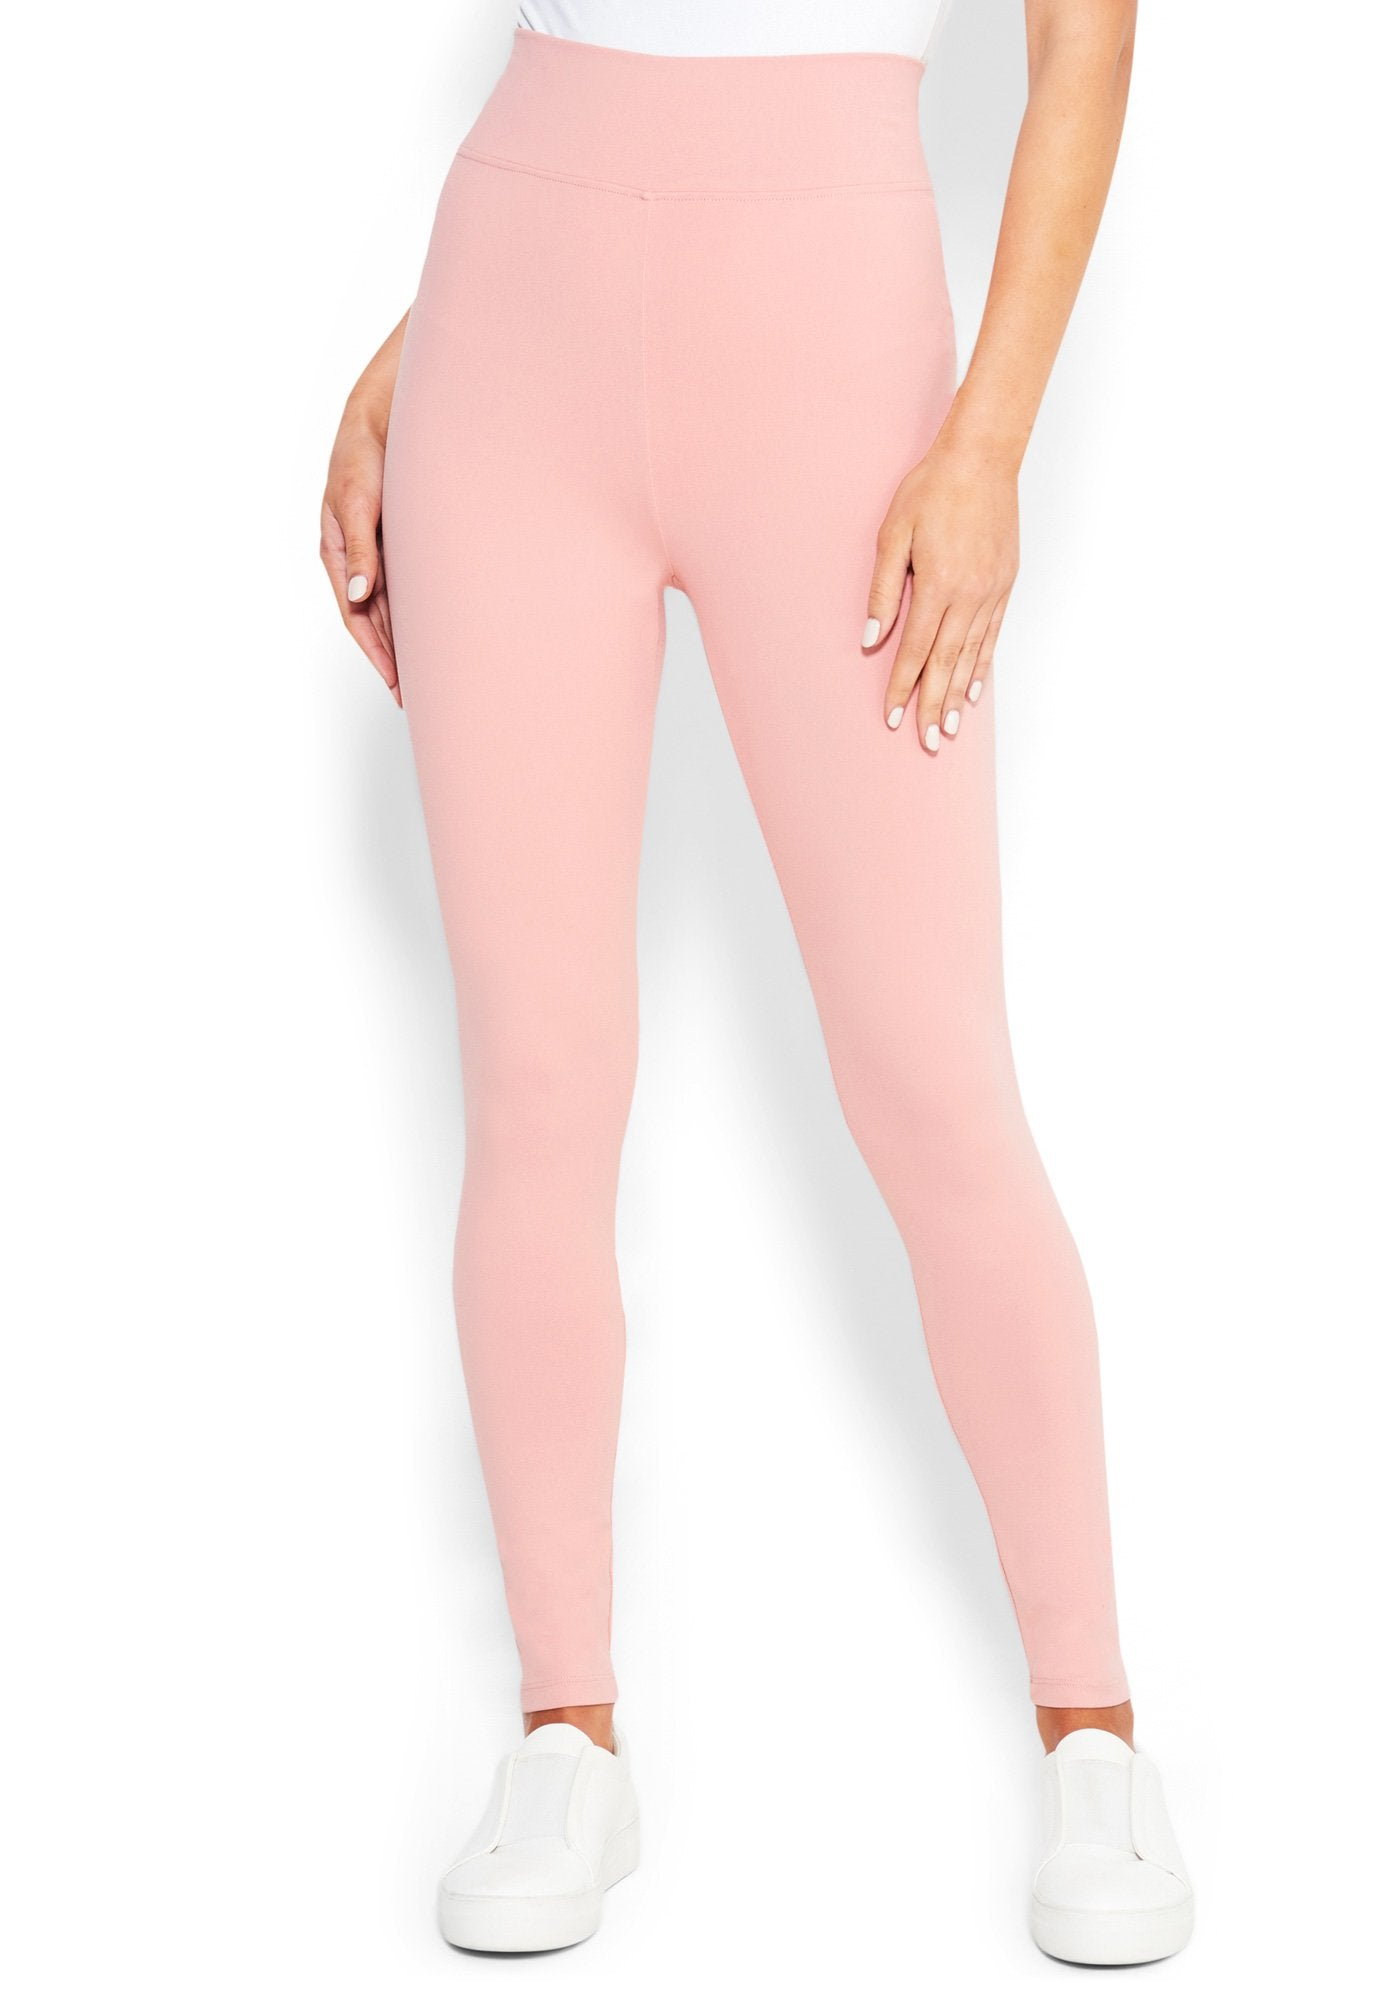 Bebe Women's Ruched Bum Bow Detail Legging, Size XXS in BRIDAL ROSE Spandex/Nylon